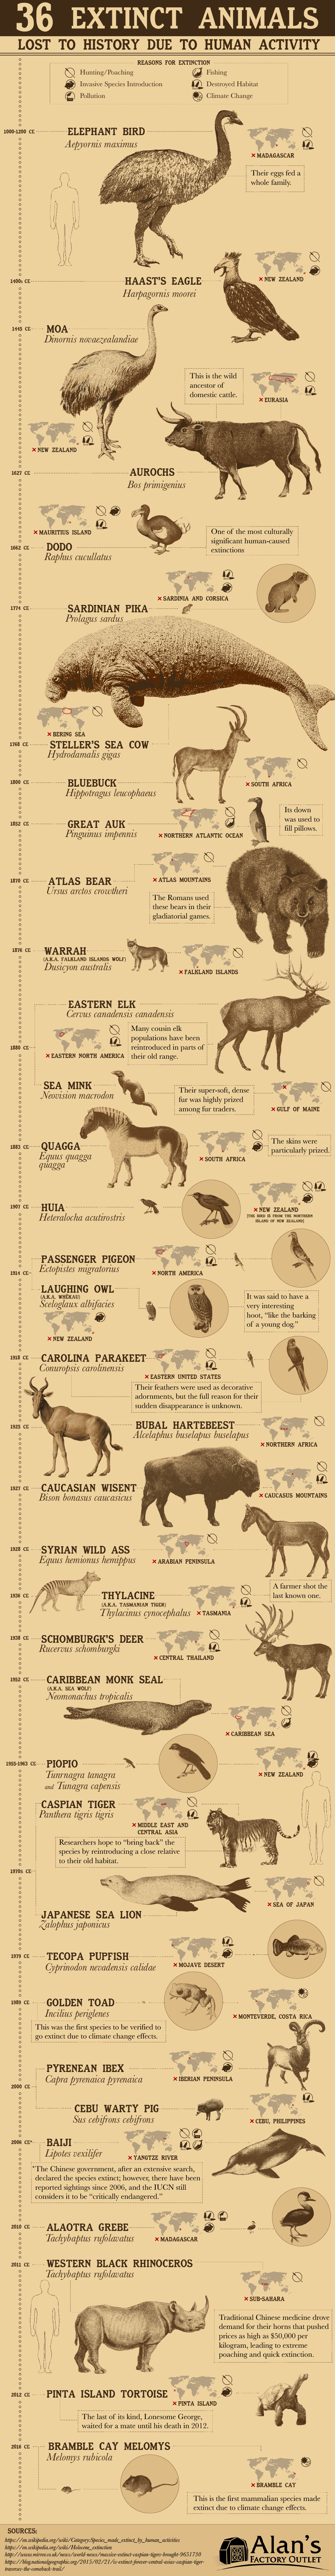 36-extinct-animals-lost-to-history-due-to-human-activity-5.png